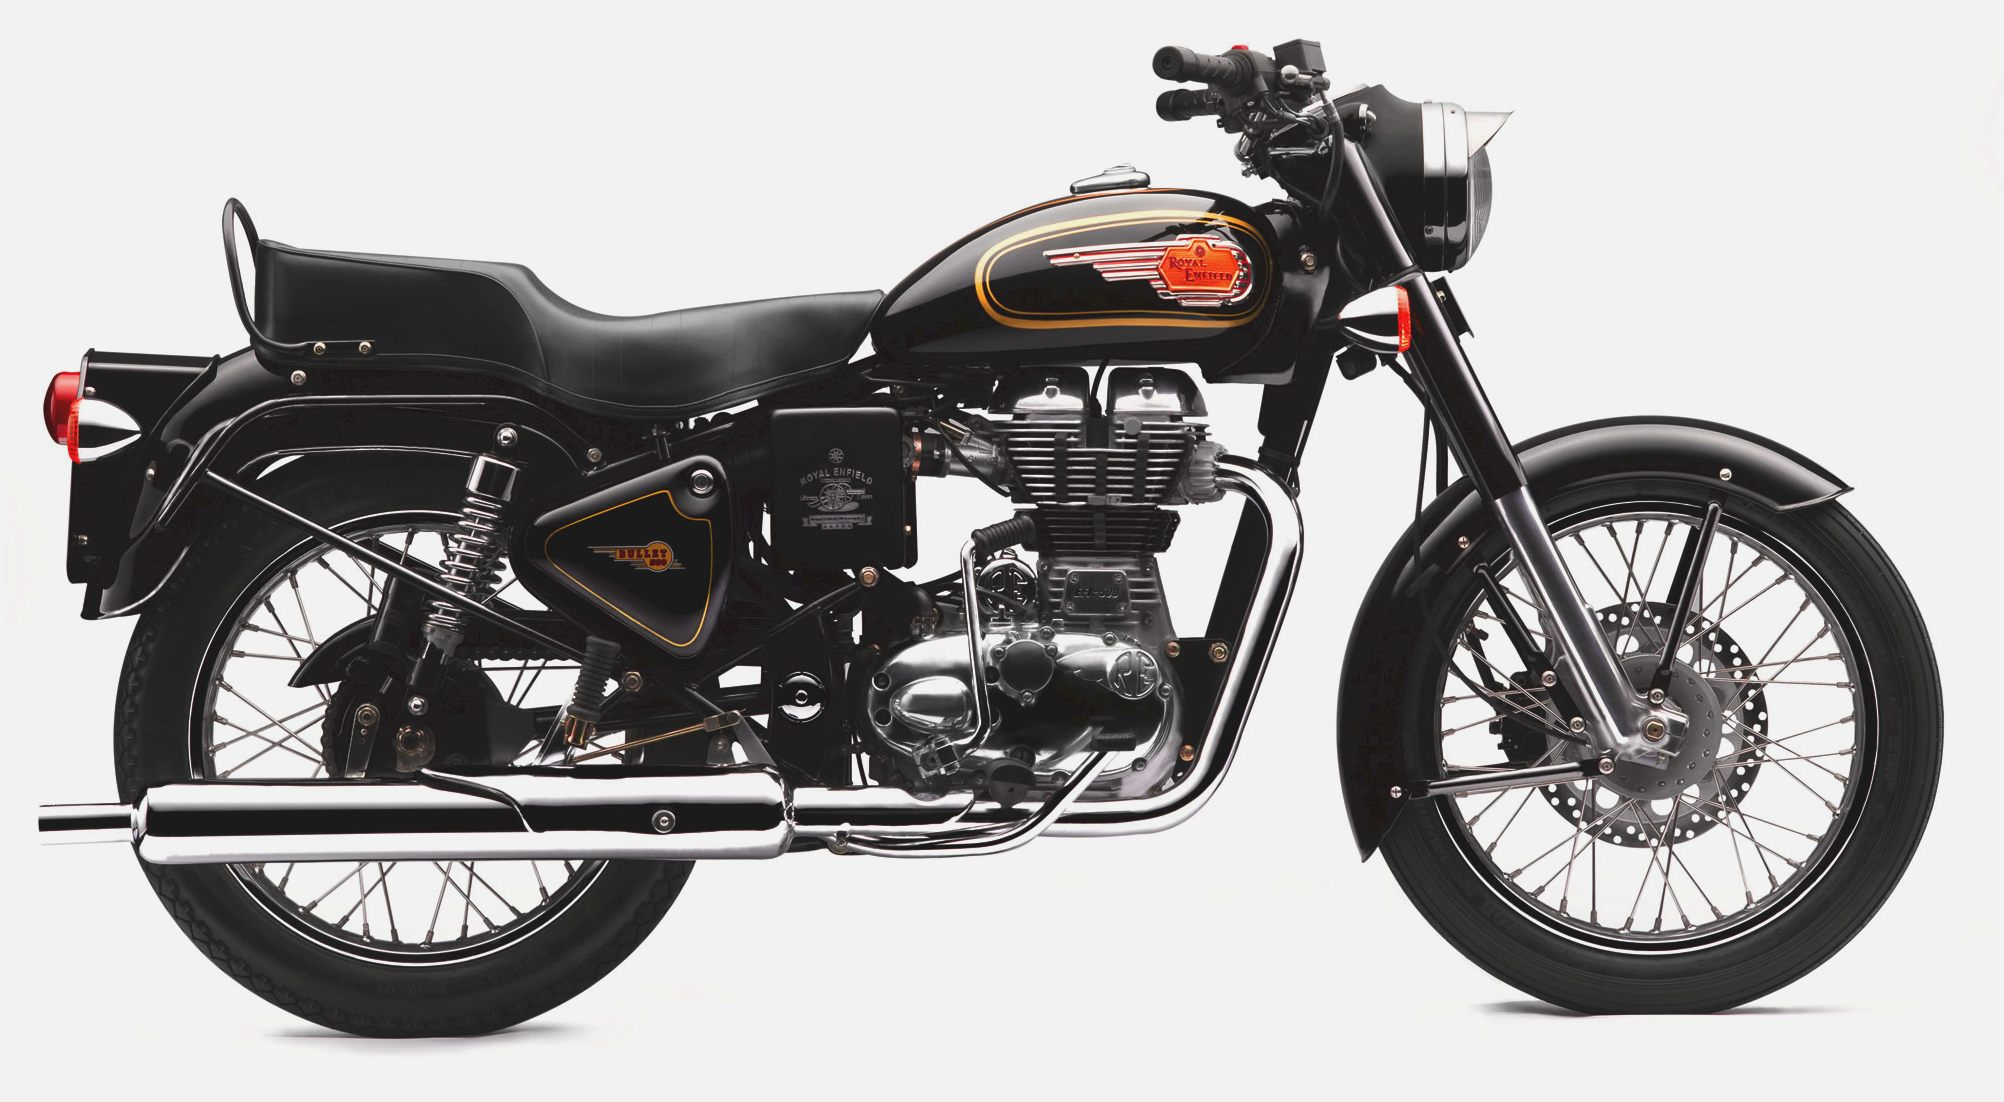 Royal Enfield Bullet 500 Trial Trail 2007 images #123680